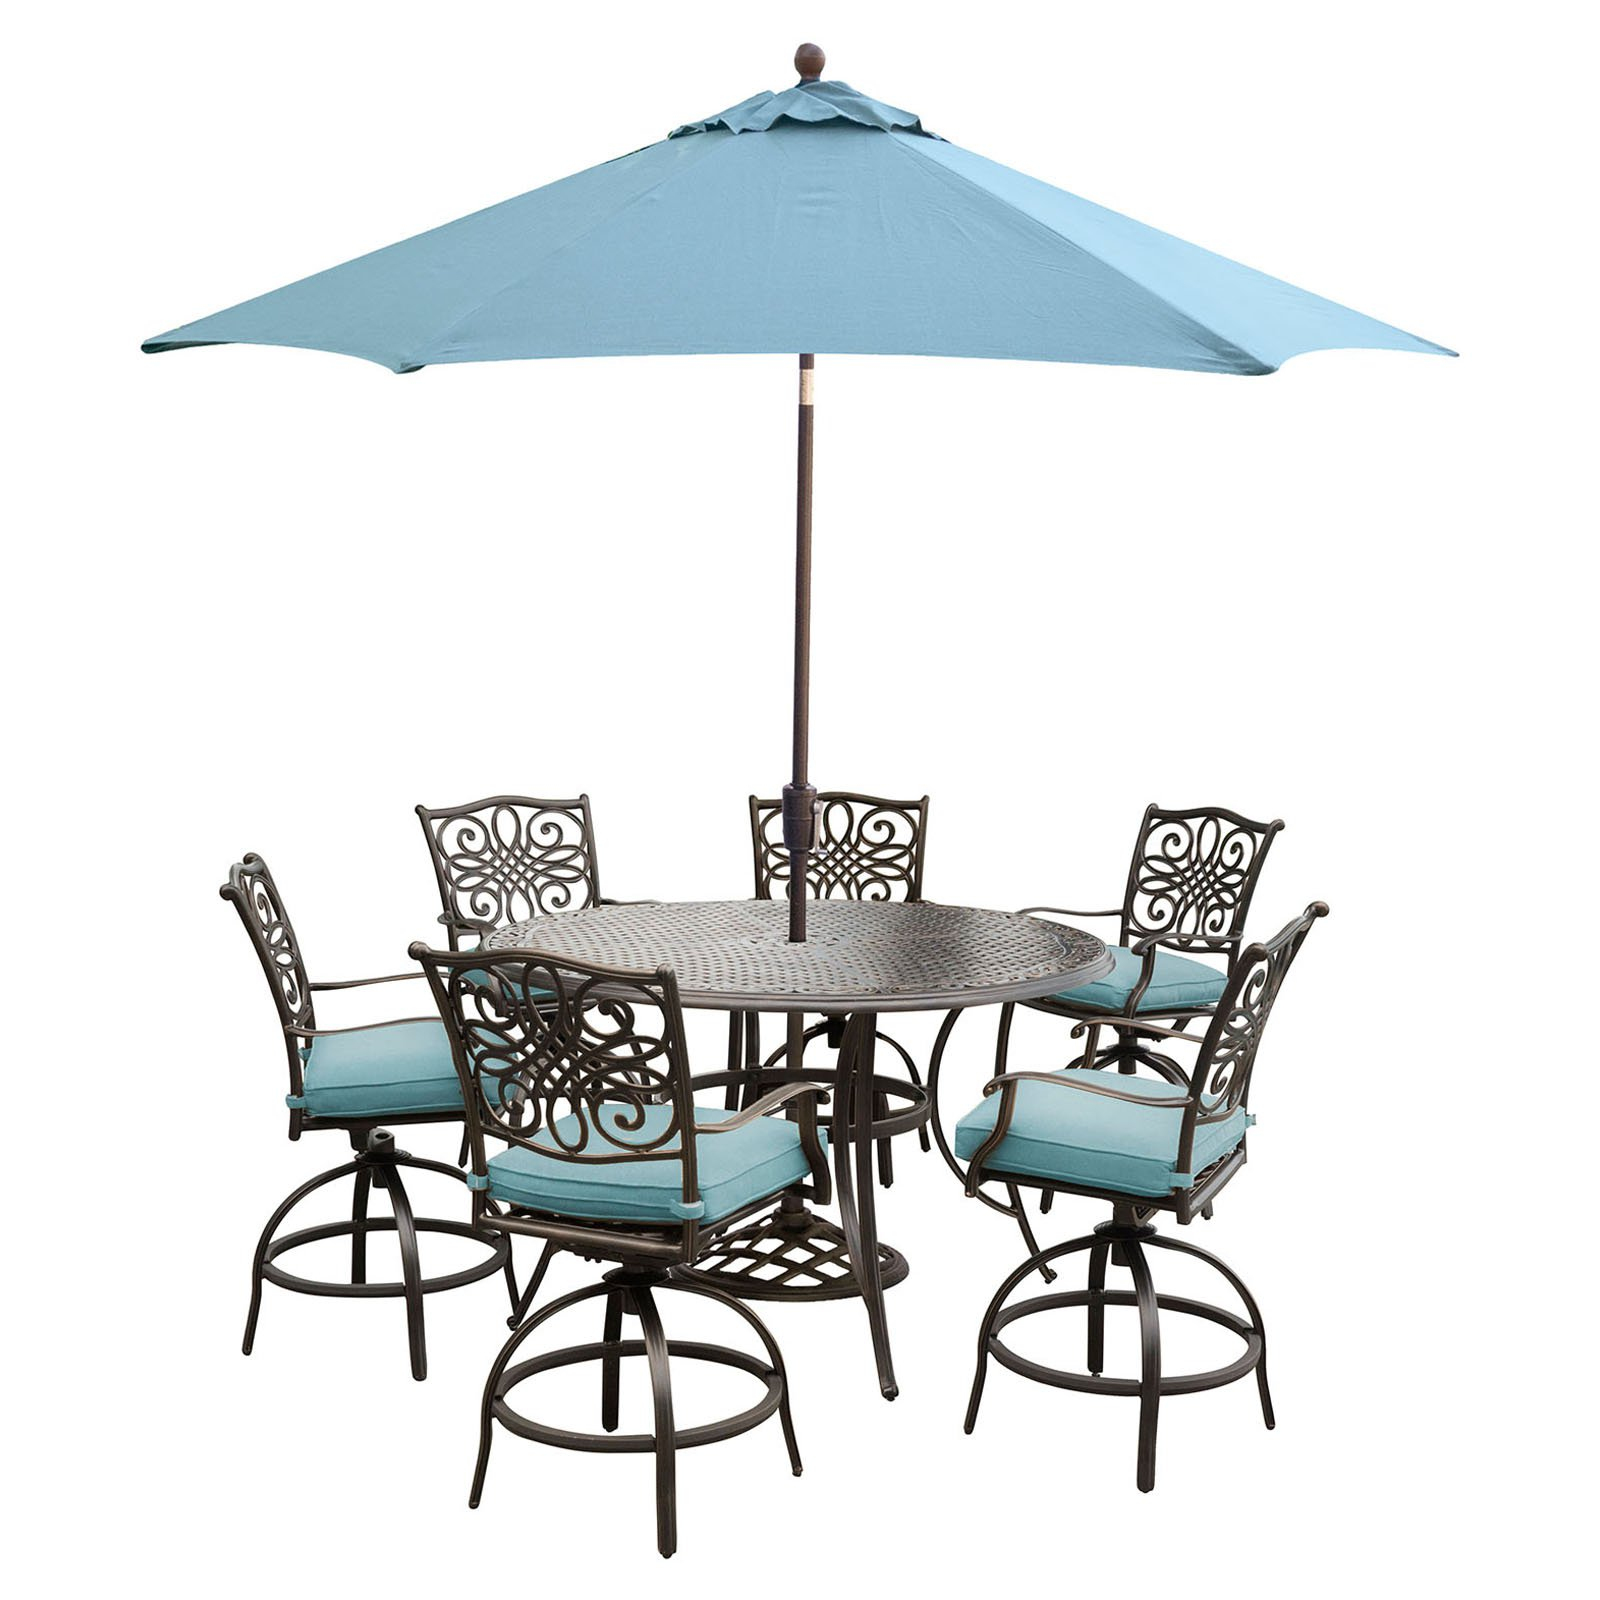 Hanover Traditions 7-Piece Outdoor High-Dining Bar Set with Cast-Top Table in Blue